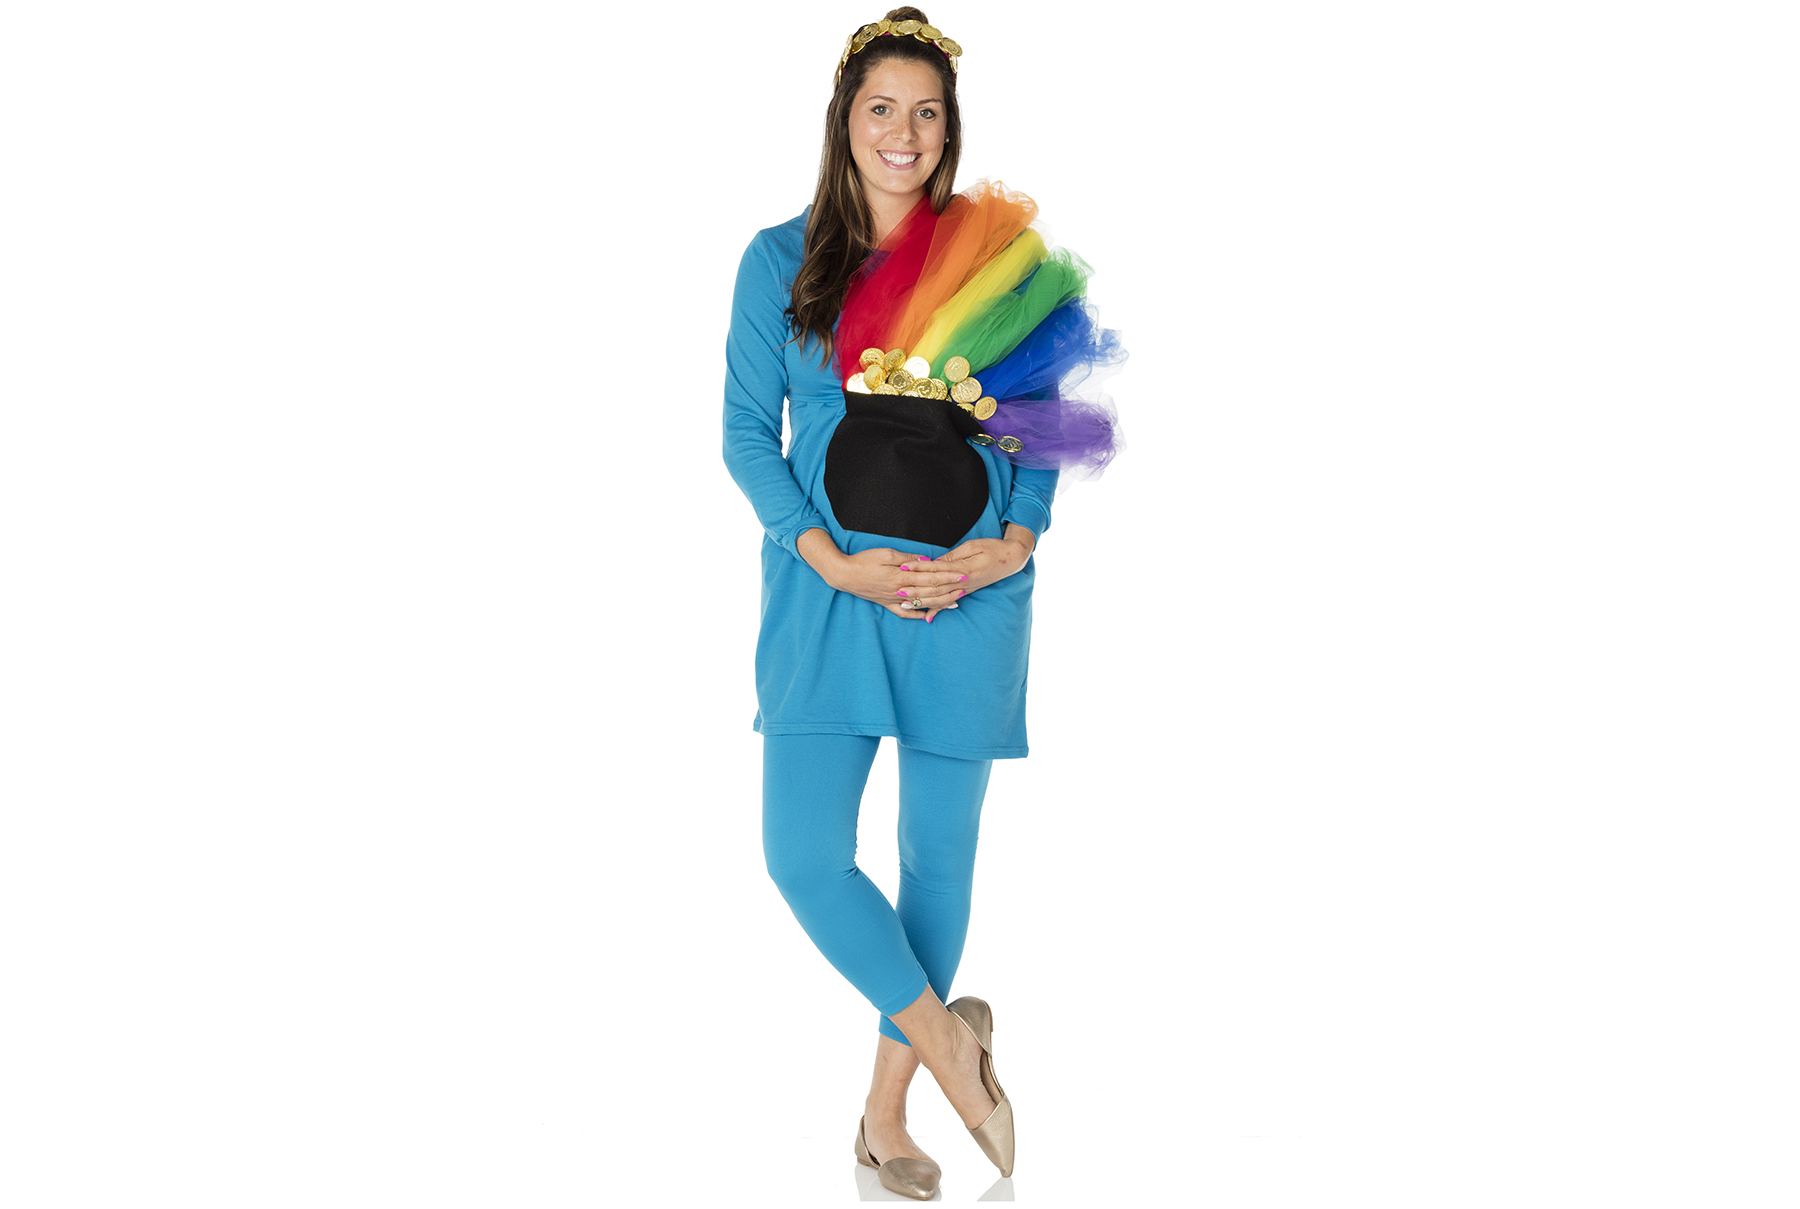 DIY Halloween costume ideas: Pot of Gold Under the Rainbow for pregnant women